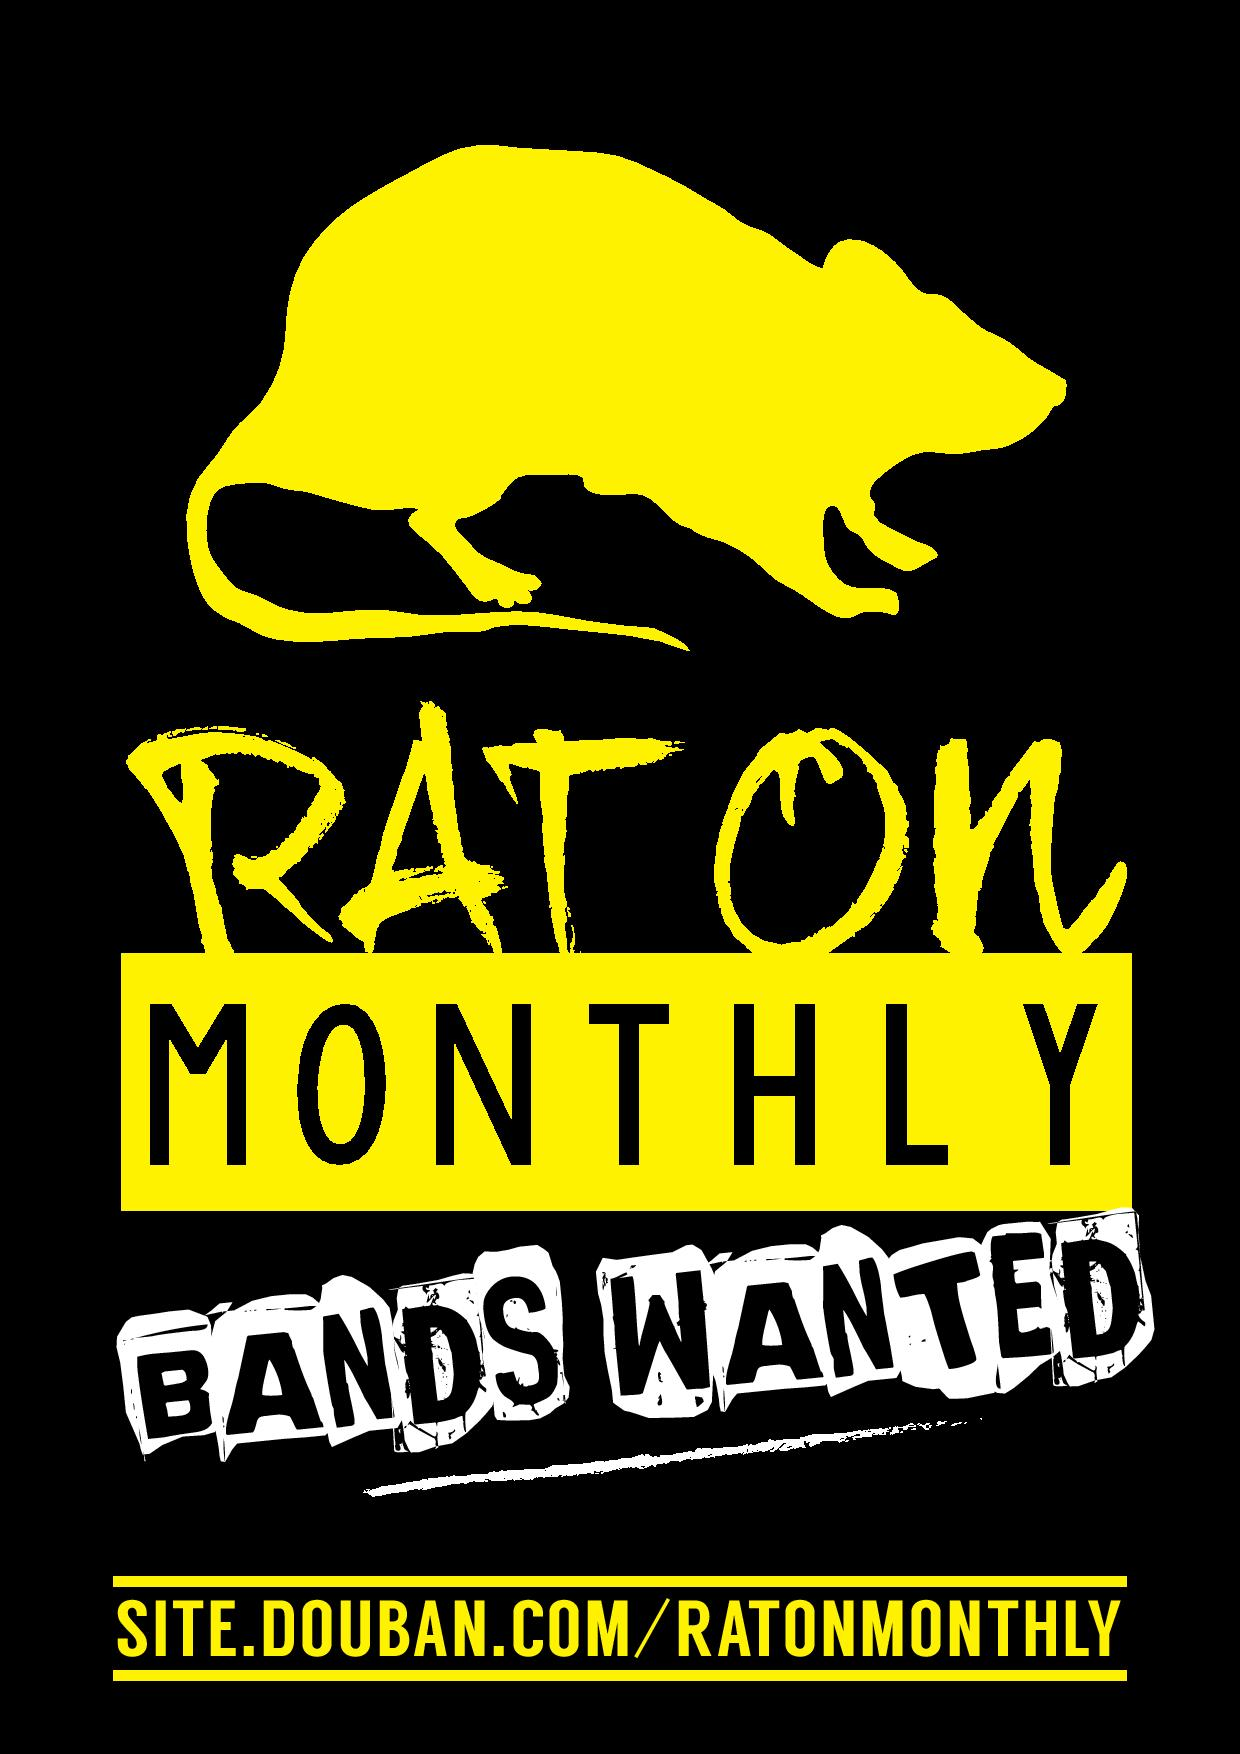 Rat On Monthly Bands Wanted JPEG Poster